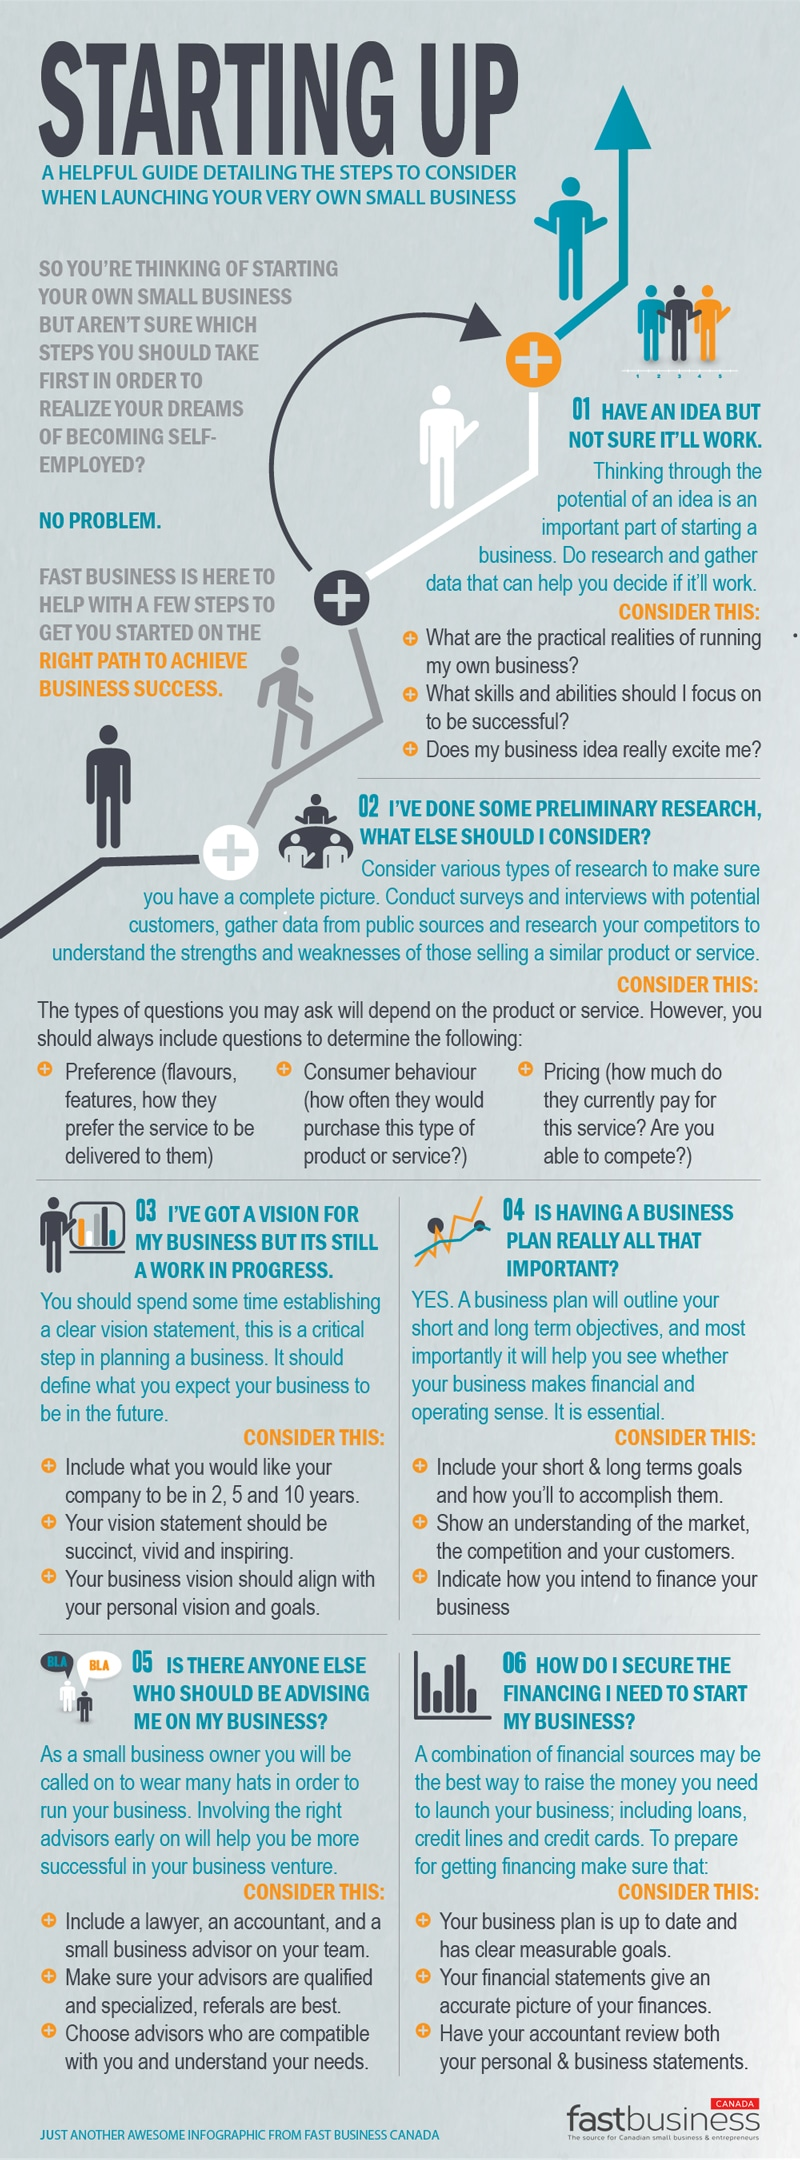 Starting Up: Quick Guide To Starting A Small Business [Infographic]